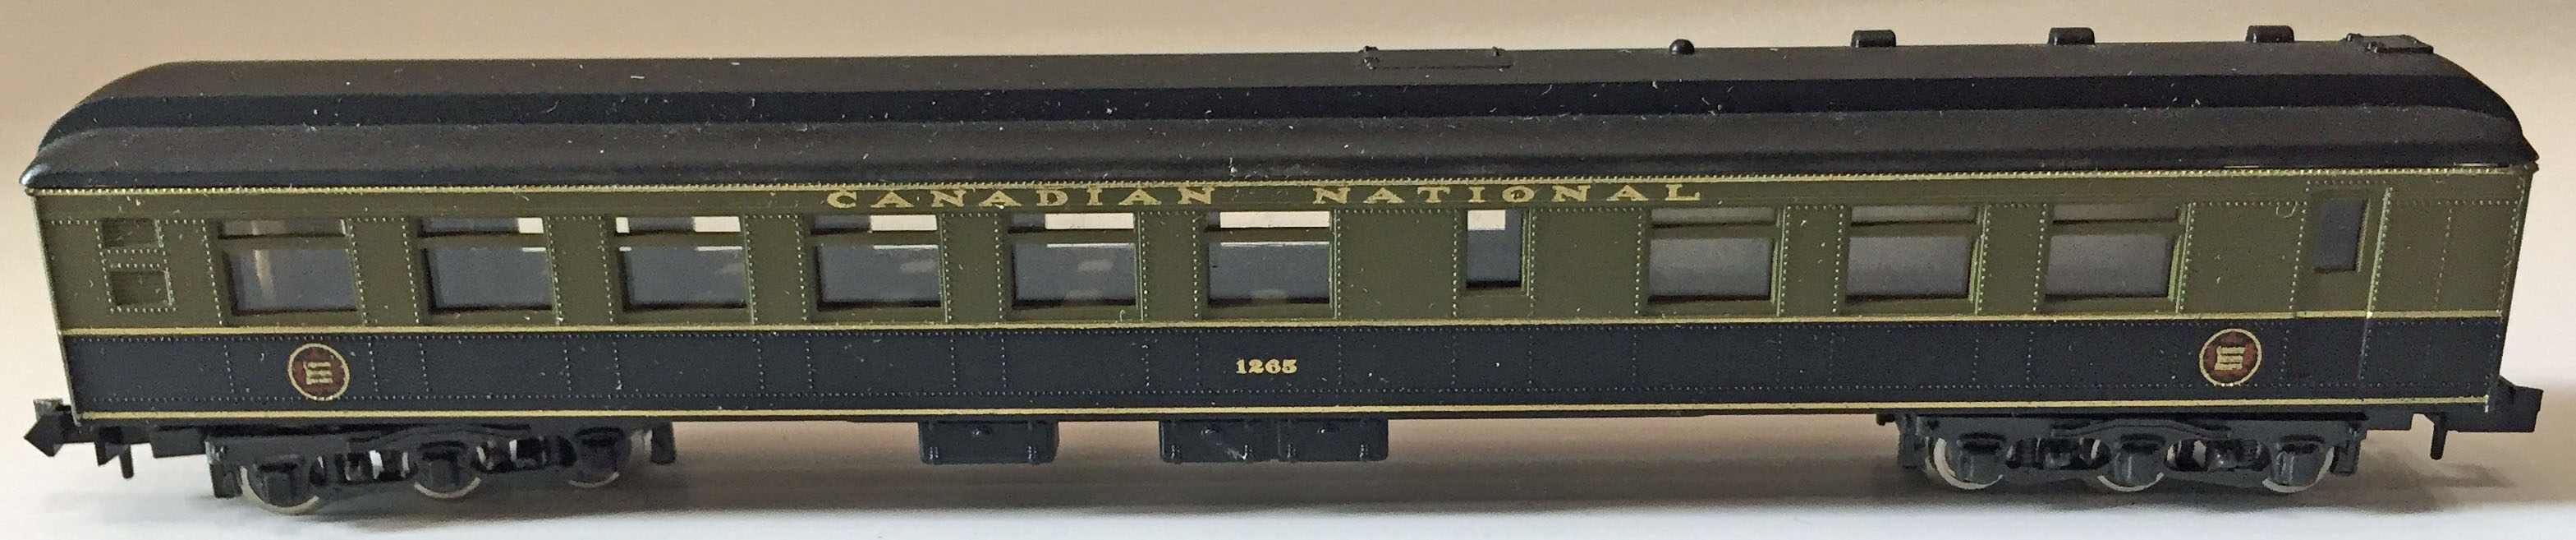 N Scale - Rivarossi - Unknown 1265 - Passenger Car, Heavyweight, Diner - Canadian National - 1265